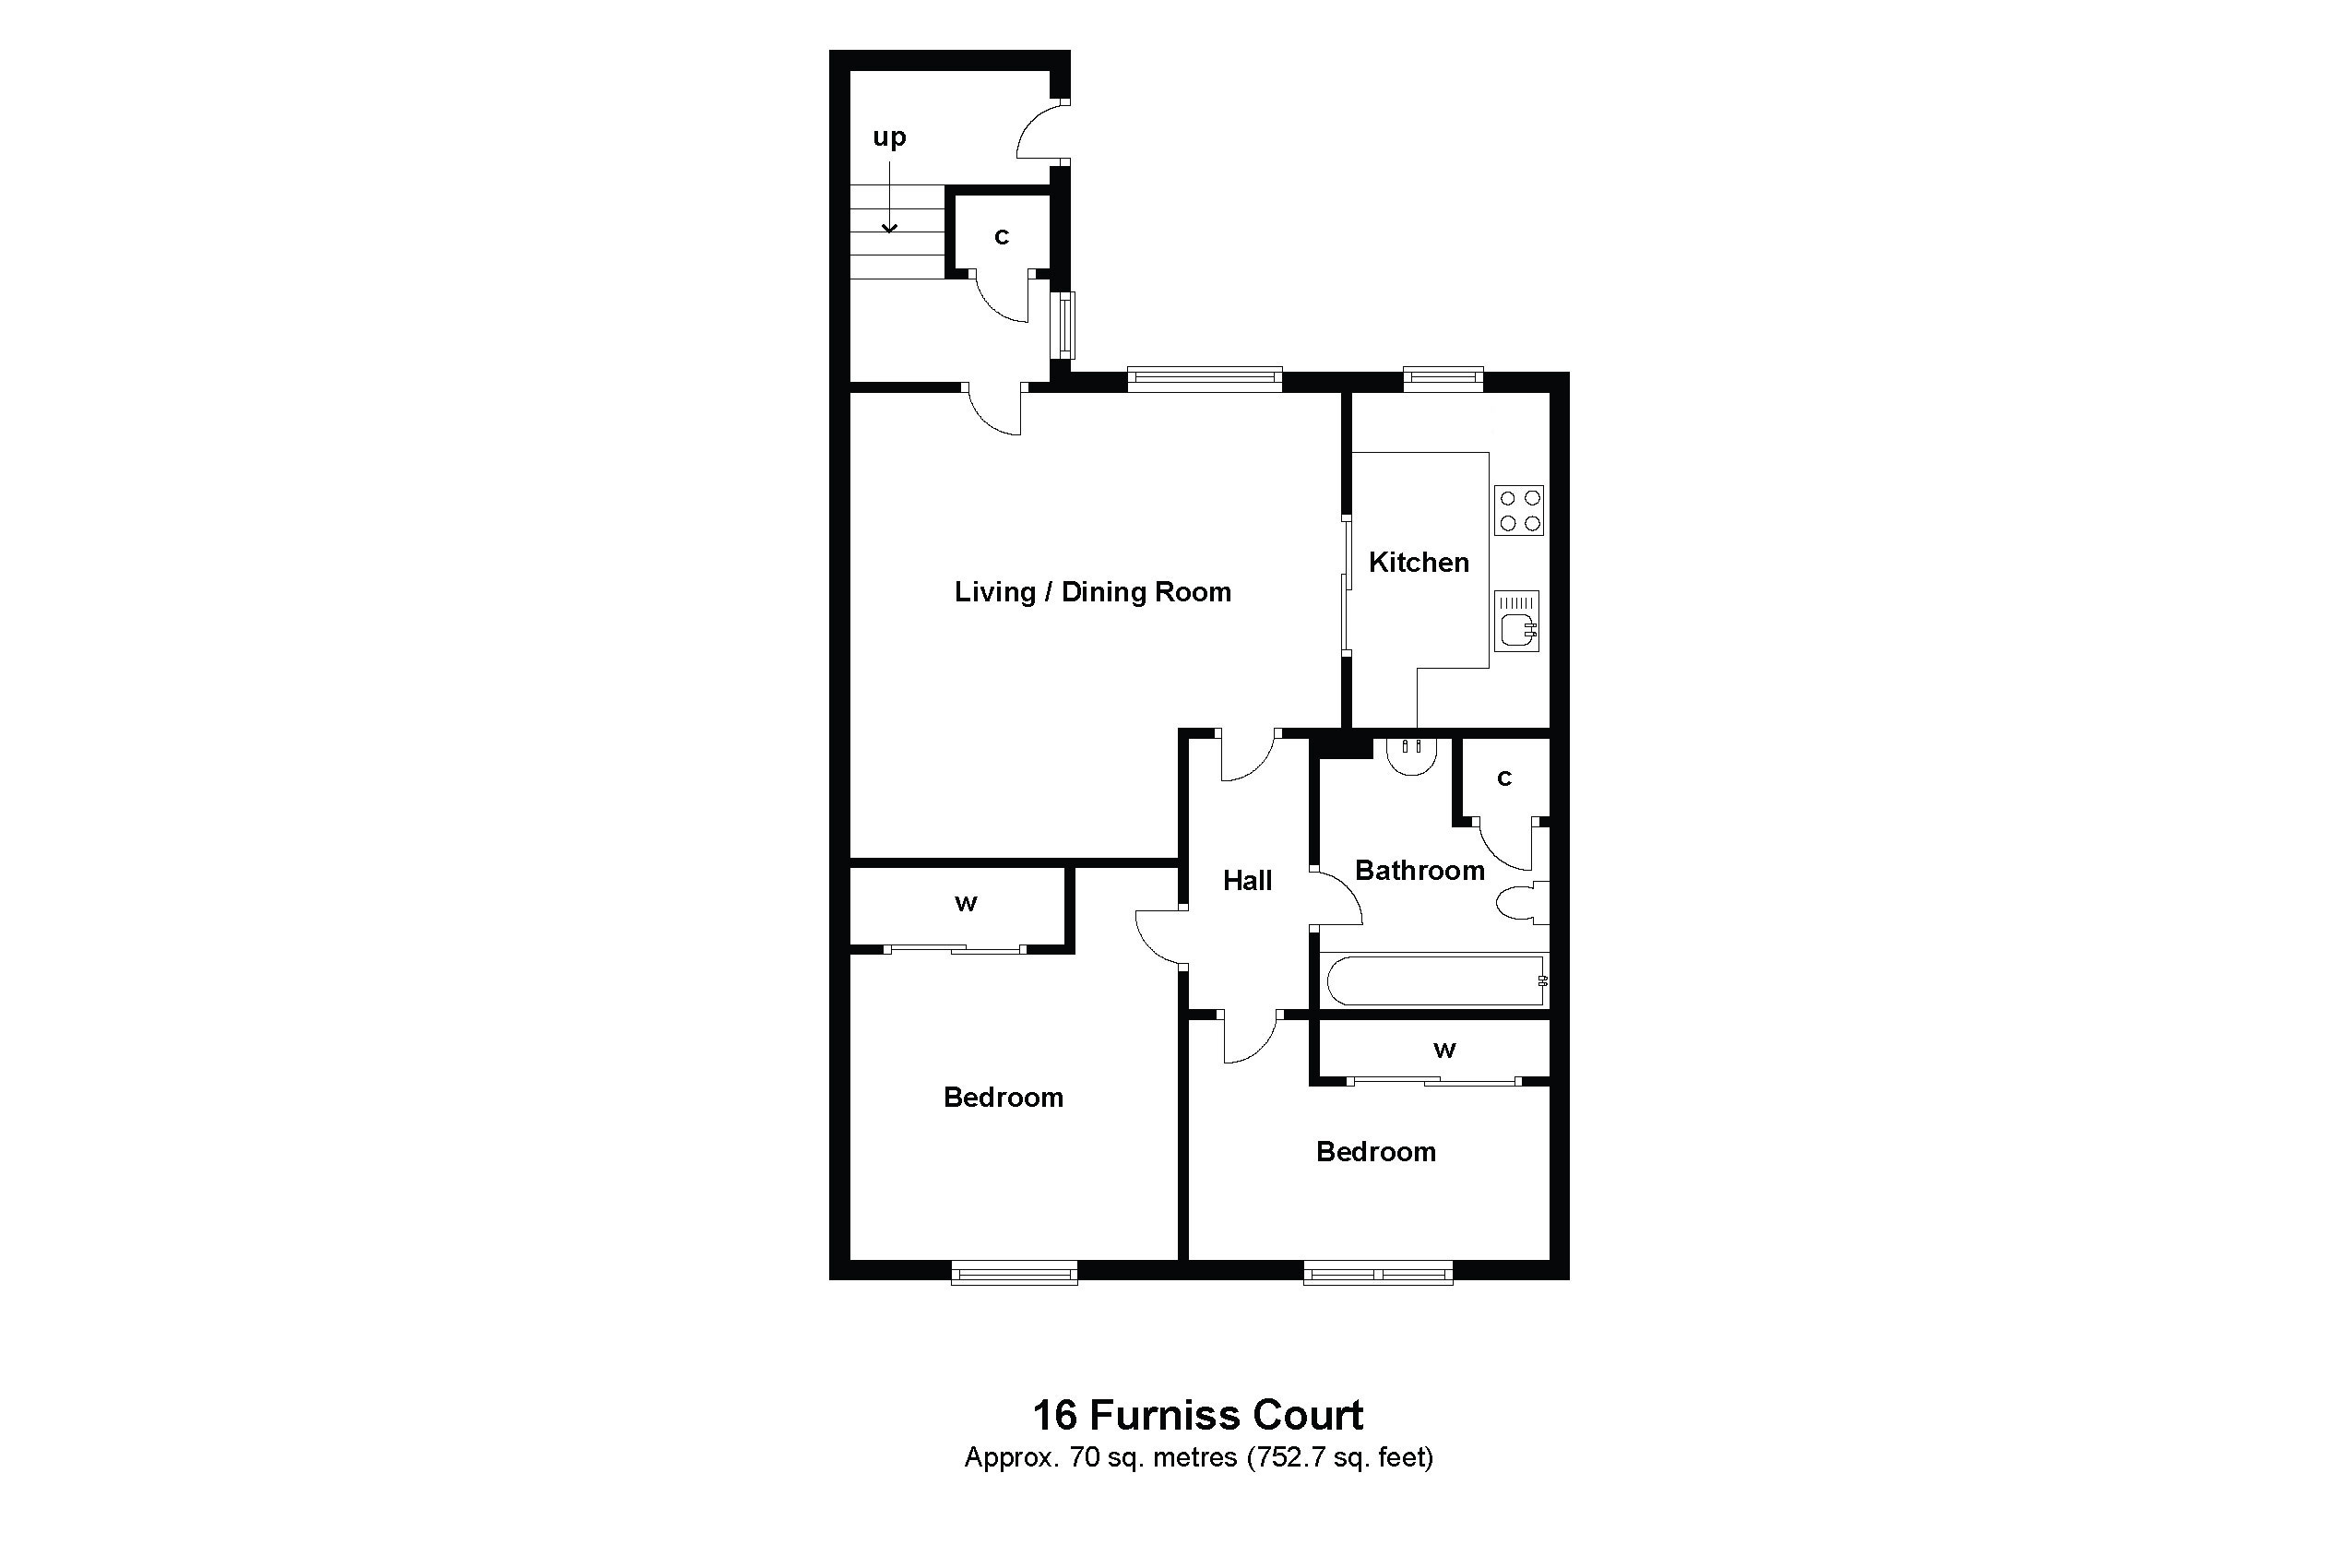 16 Furniss Court Floorplan